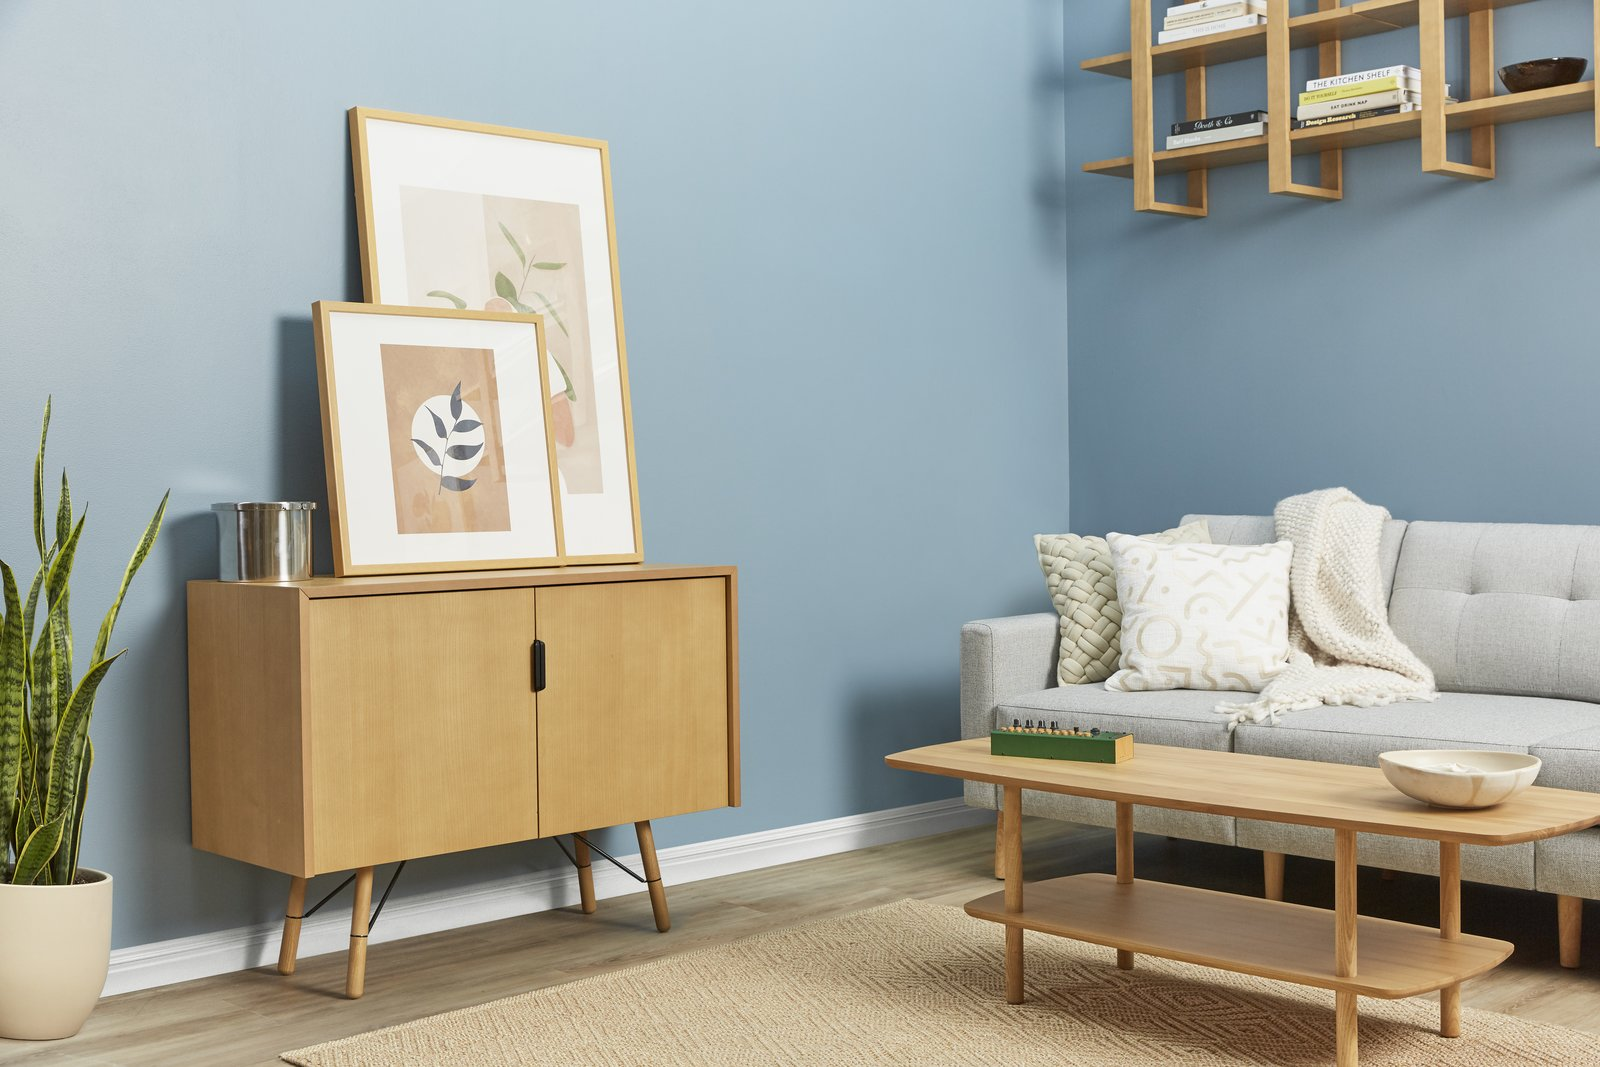 The Serif credenza, pictured here in oak, has been designed to hold TVs up to 65  Photo 4 of 6 in The Internet's Favorite Furniture Brand Now Offers Chic, Affordable Benches and Credenzas